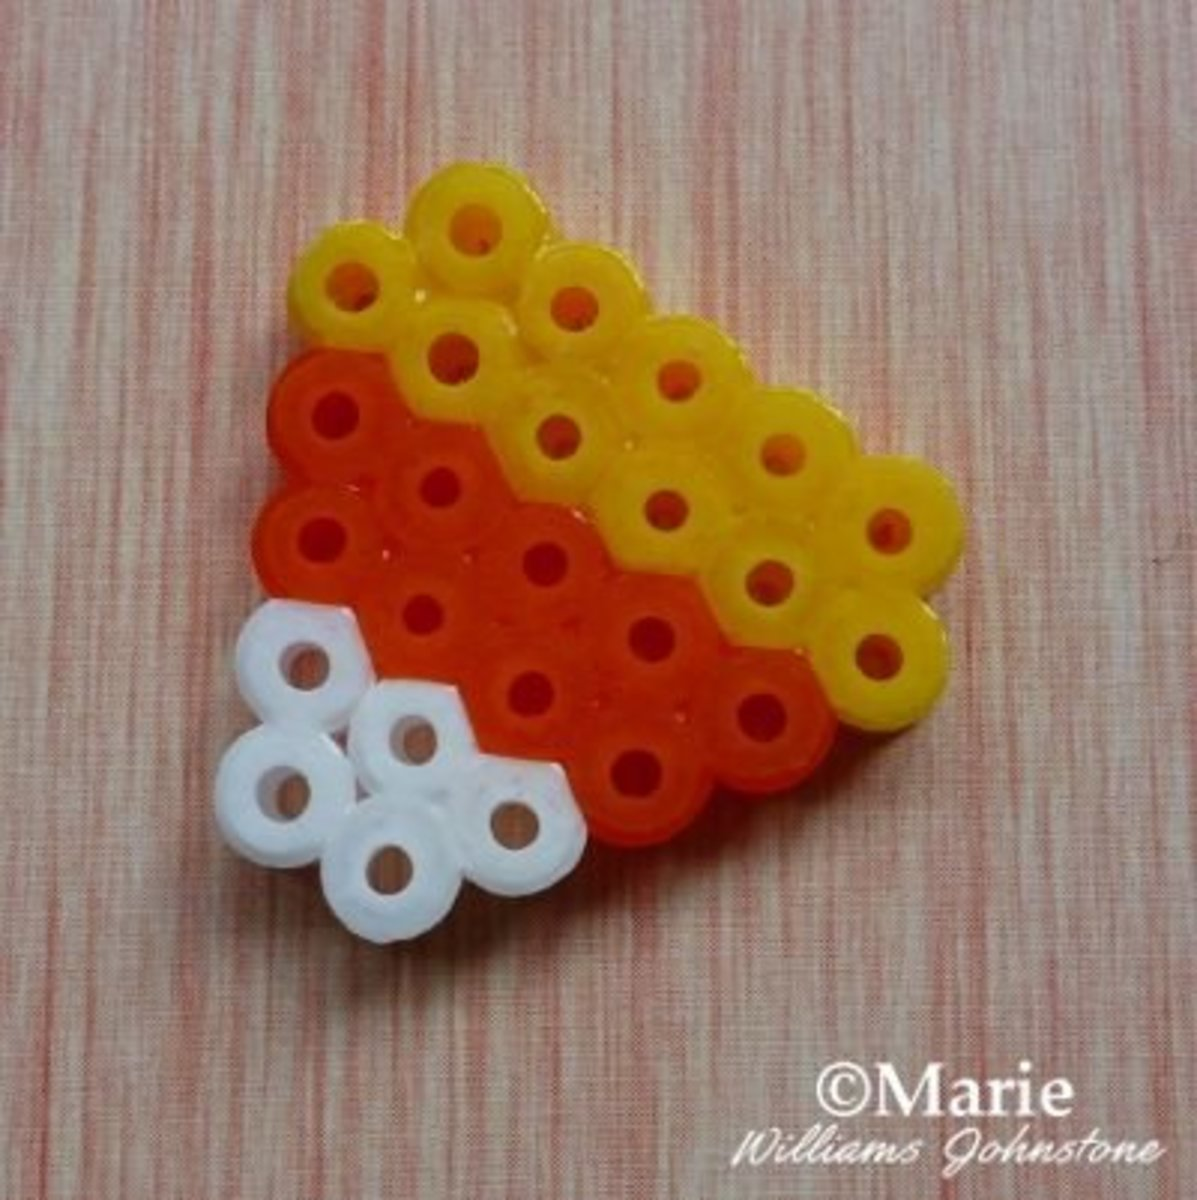 Make some tiny candy corn designs with fused perler beads for Halloween and turn them into charms, necklaces, or even little earrings.